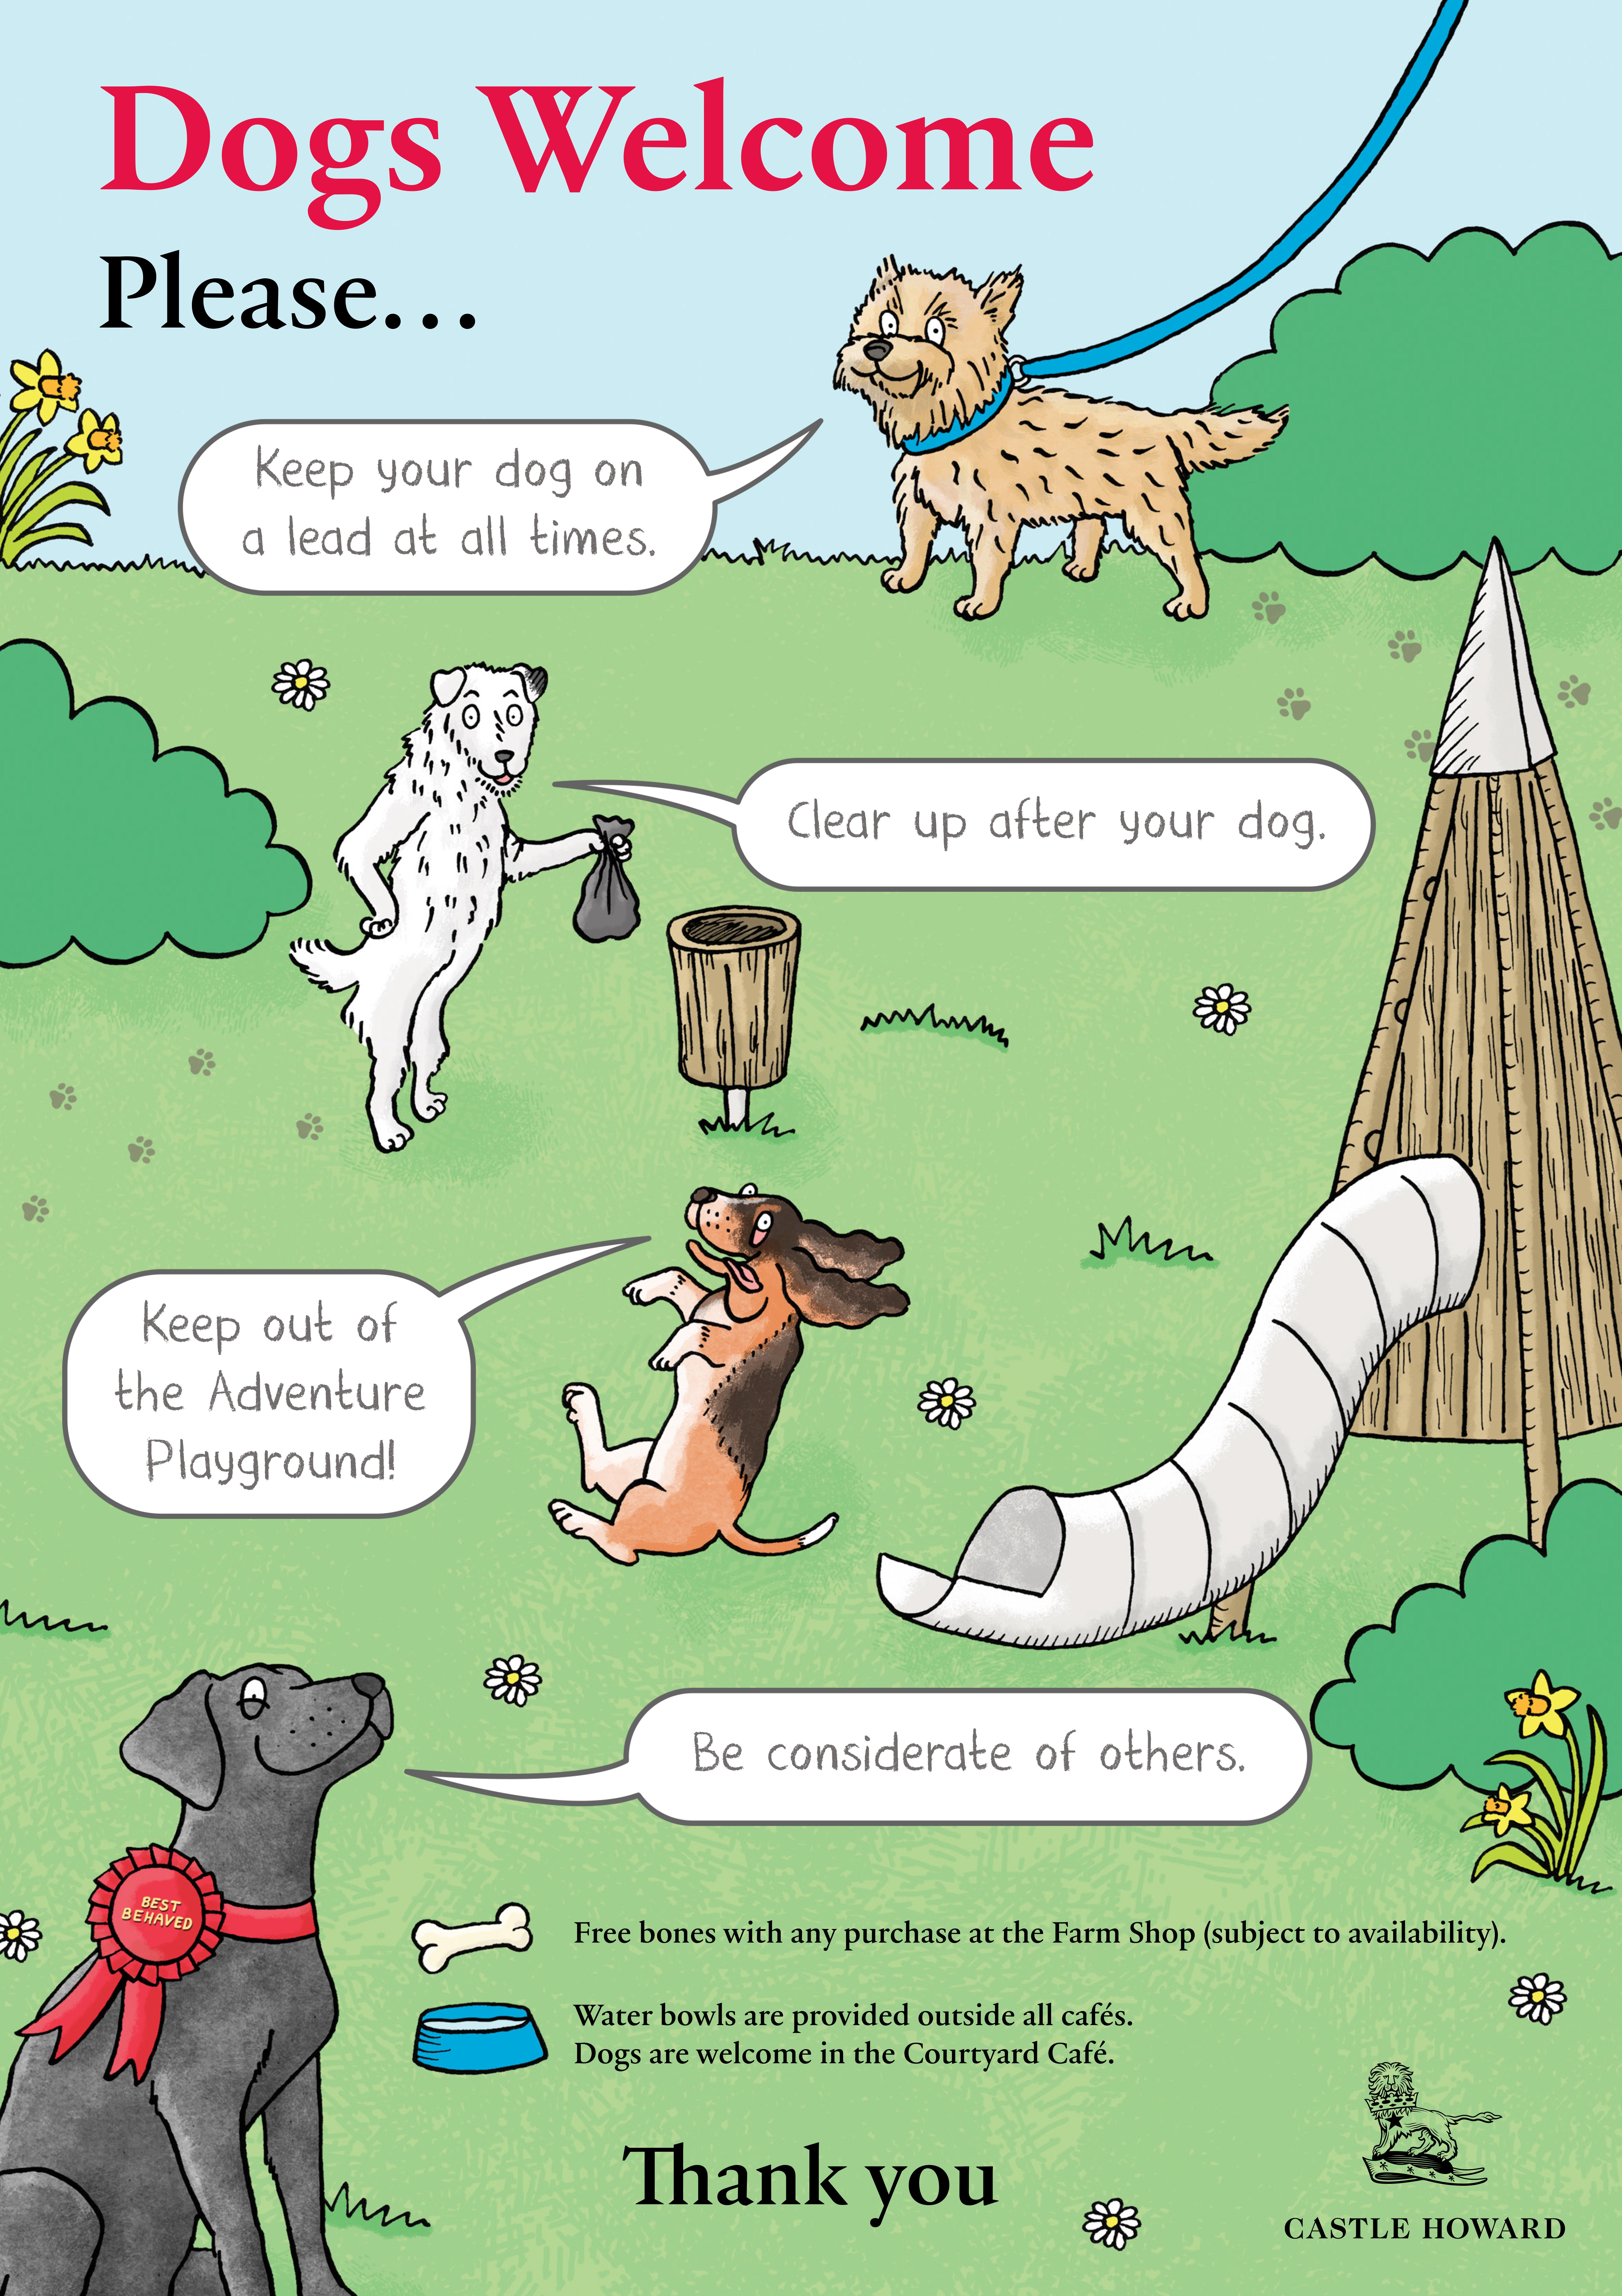 Humorous rules for dogs illustrated sign/poster by illustrator Emma Metcalfe